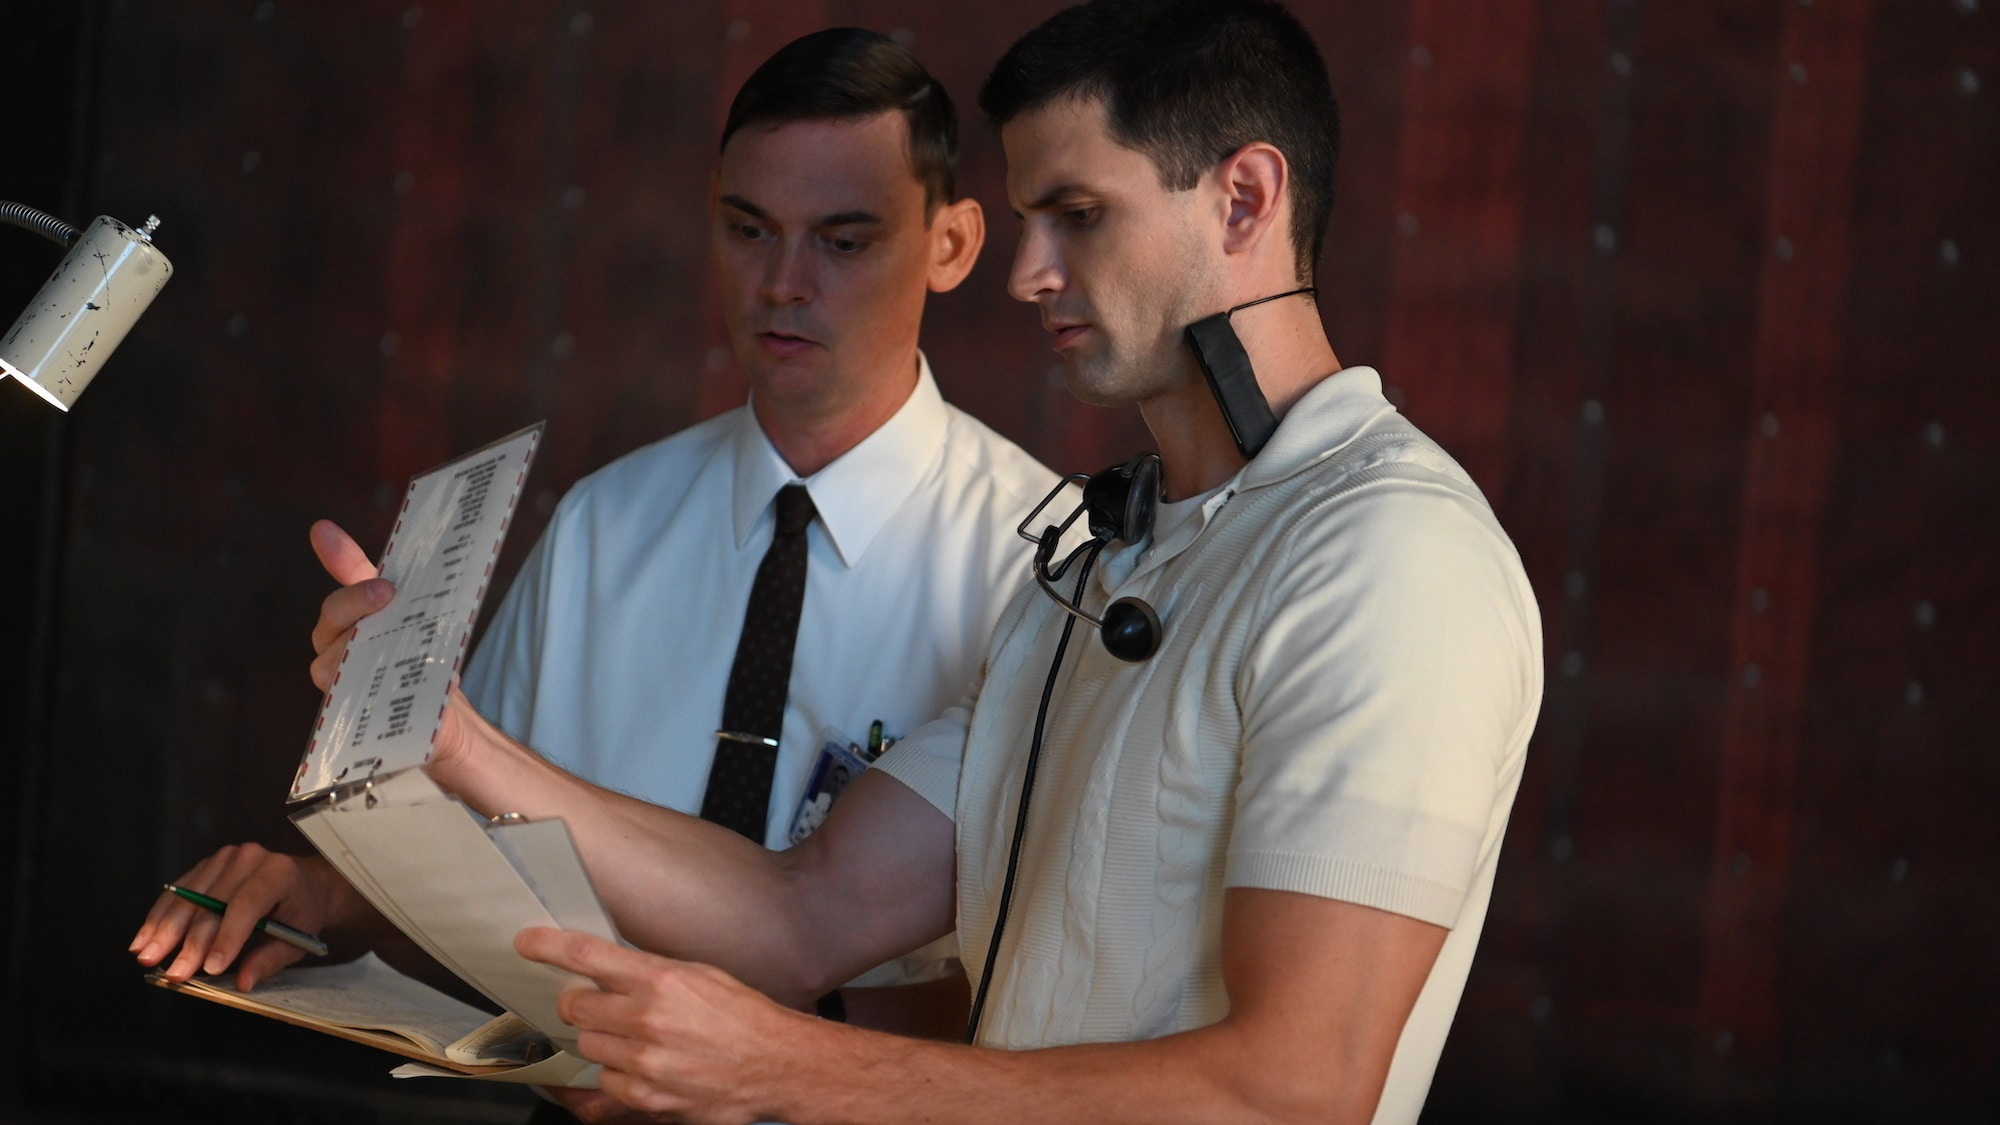 L to R: Joshua Ritter as Roy Hutmacher and James Lafferty as Scott Carpenter during training session in National Geographic's THE RIGHT STUFF streaming on Disney+. (National Geographic/Gene Page)